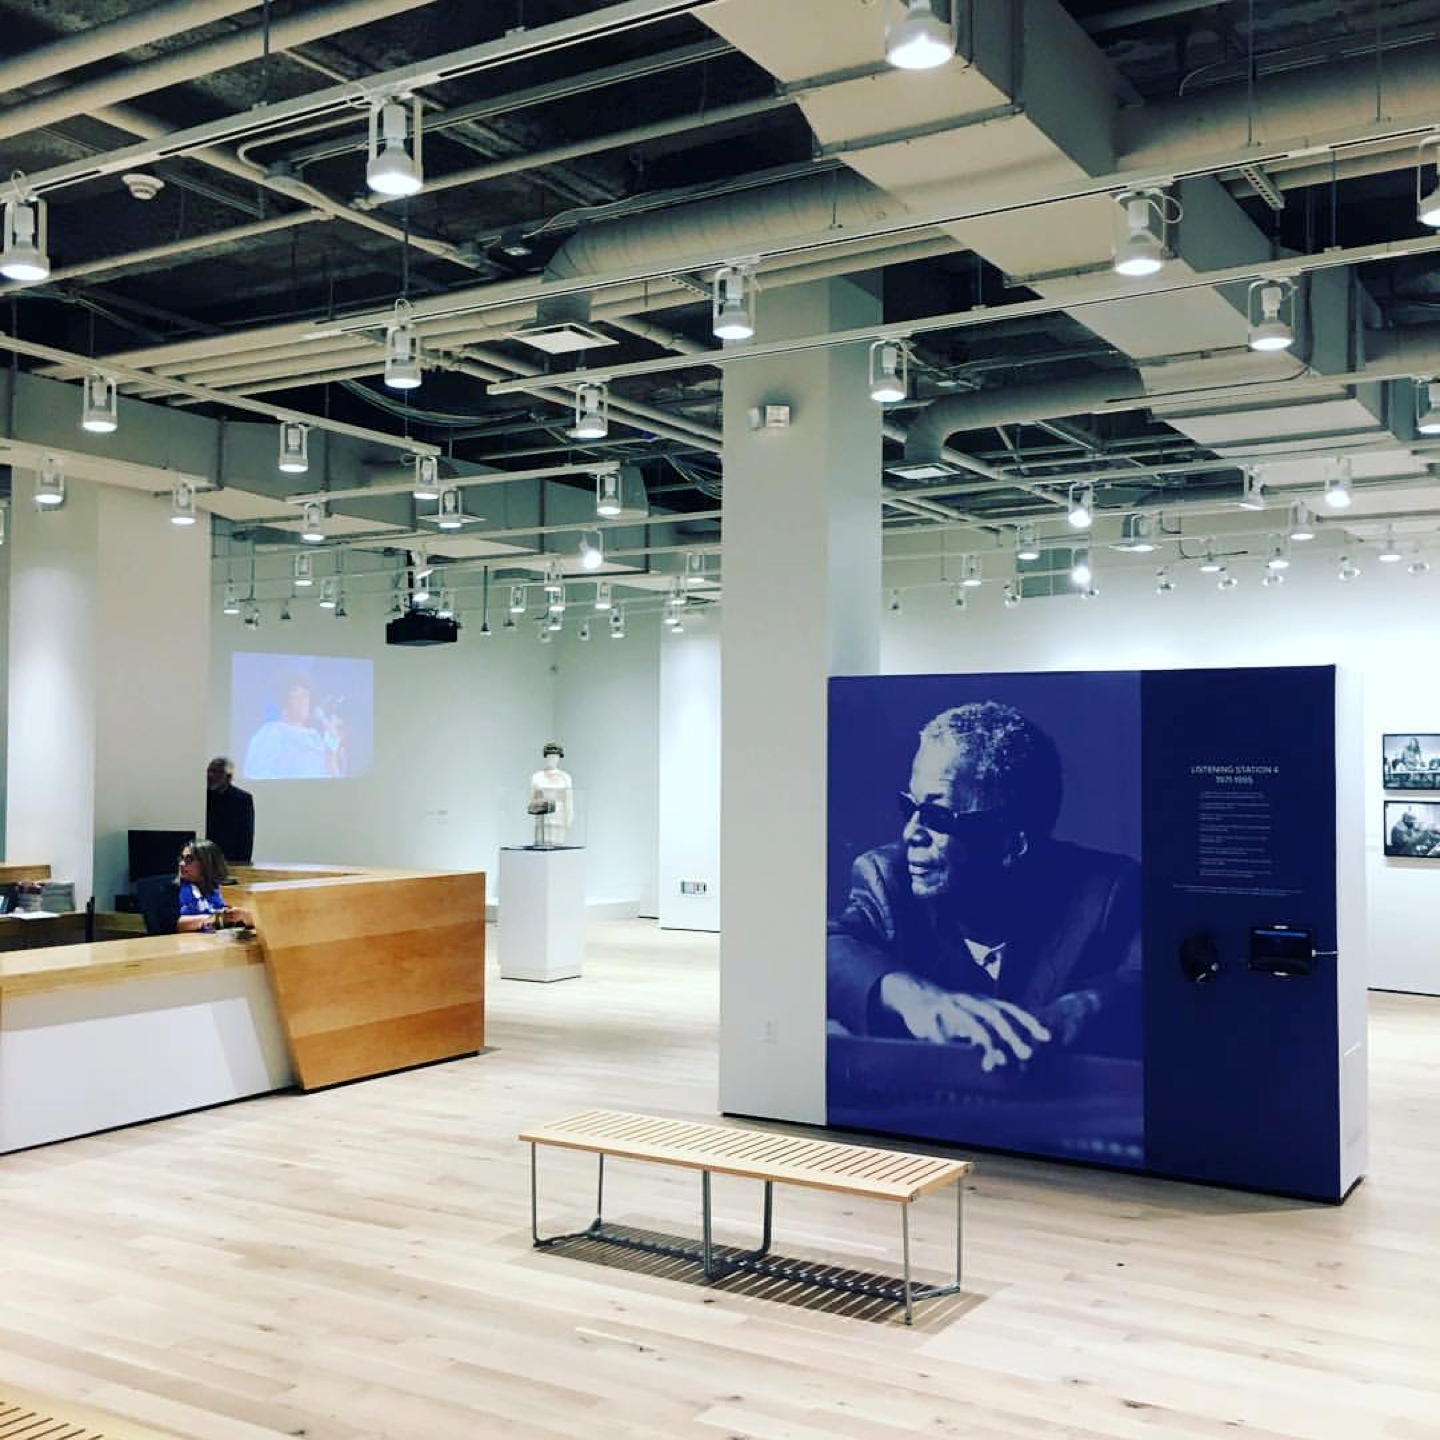 The gallery space at Express Newark in the Hahne's building. Photo courtesy KSS Architects.